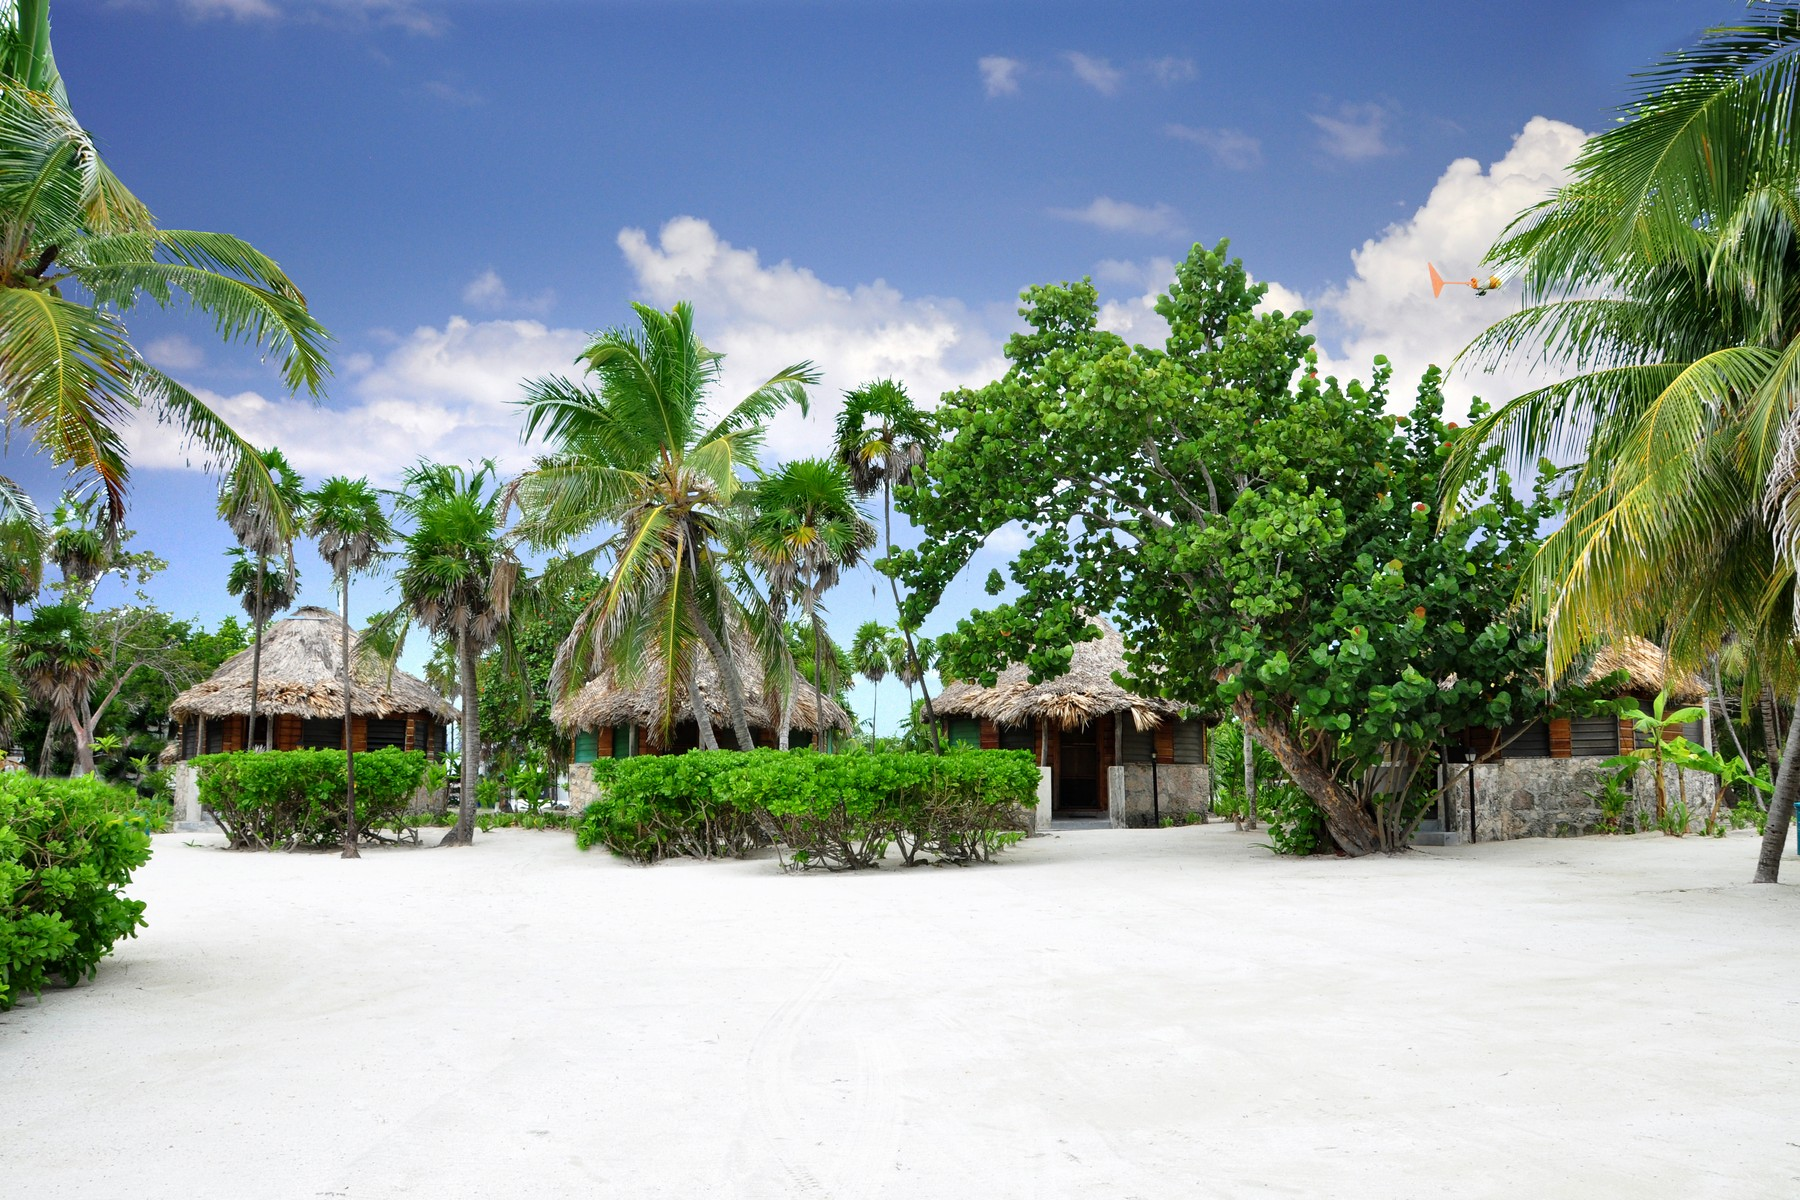 COSTA MAYA BEACHFRONT RETREAT